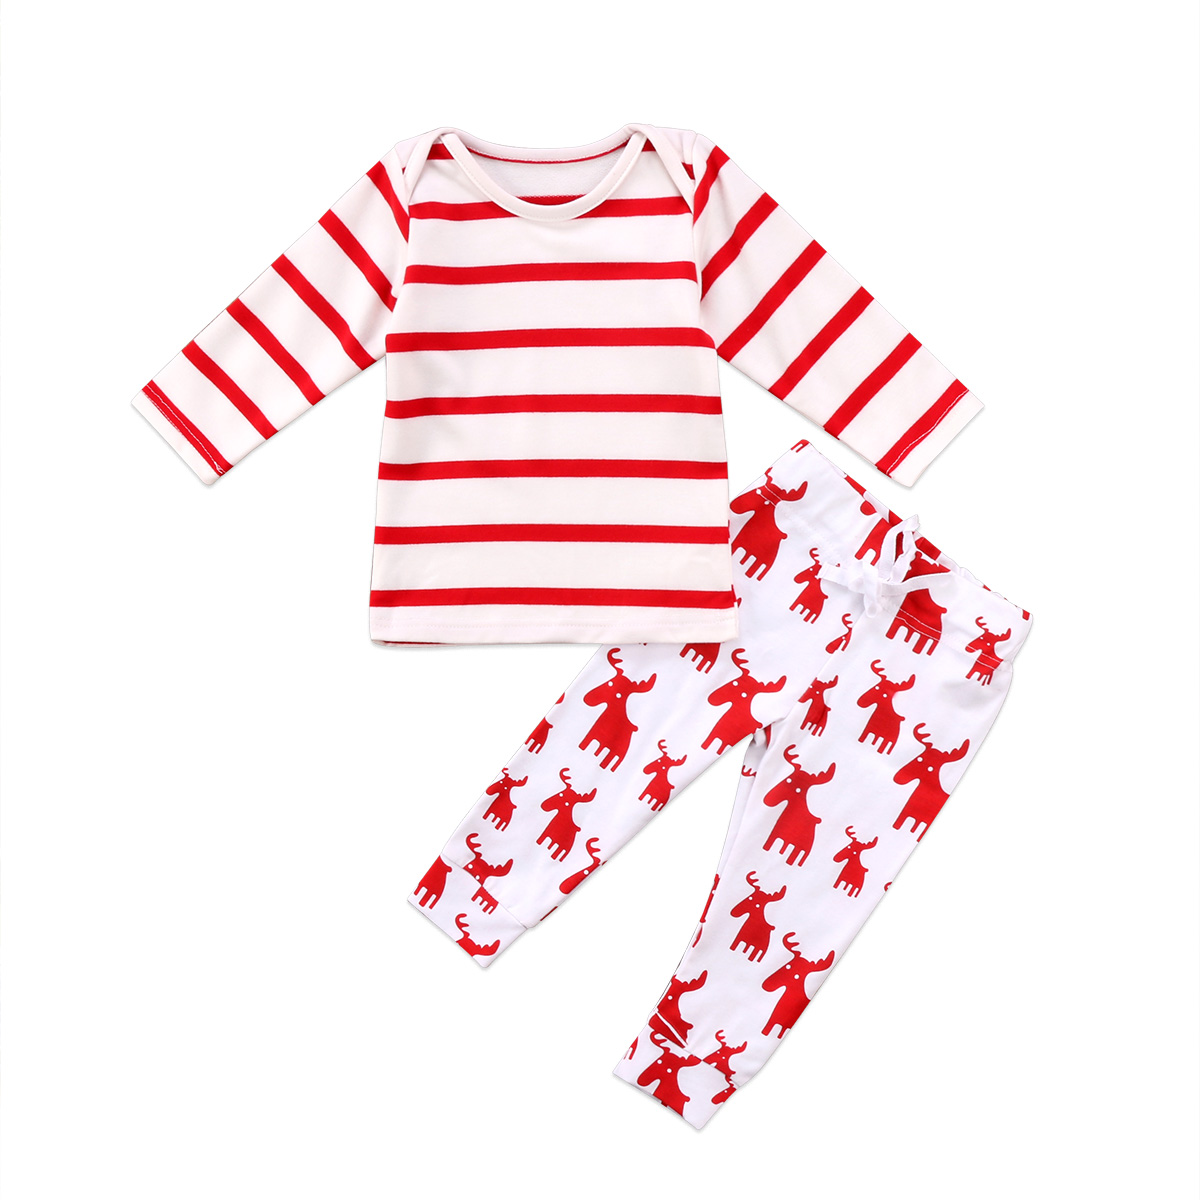 Newborn Baby Boys Girls Christmas Clothes Tops Romper Long Pants 2PCS Outfits